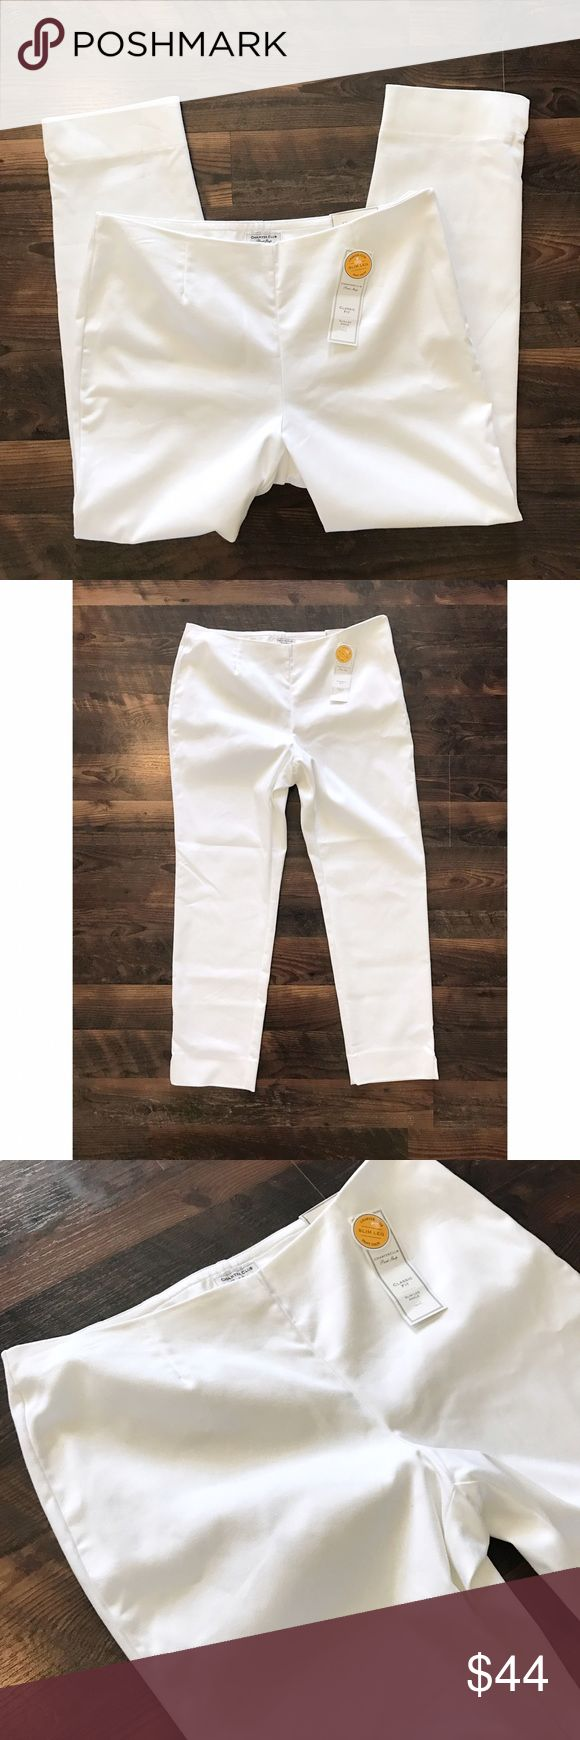 "White Classic Fit Pants Super chic brand new white classic fit pants by Charter Club. They are slightly slimmer than a straight leg, but not quite a skinny.   Size 12 Waist Flat 17"" Inseam 27"" Rise 10.5""  Item Number: L1N90BG Charter Club Pants Straight Leg"